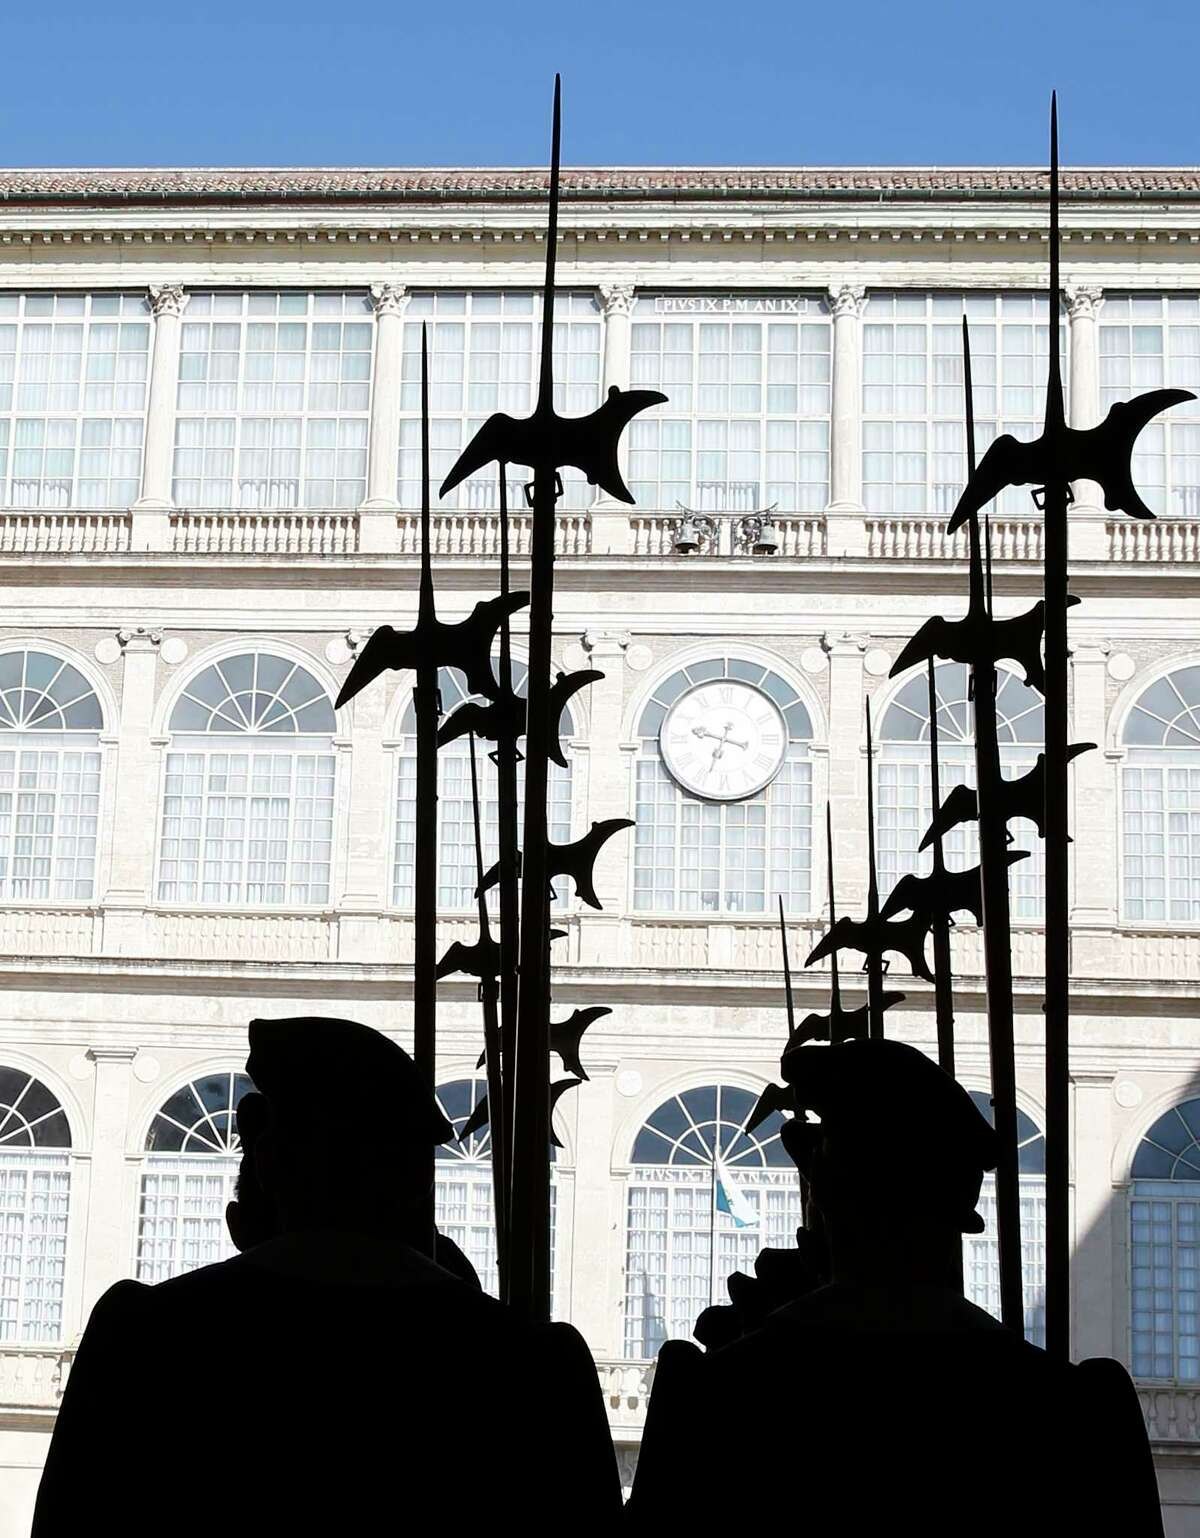 Vatican Swiss guards are silhouetted in the Vatican's courtyard ahead of a private audience between Pope Francis and Captains Regent of San Marino Matteo Fiorini, and Enrico Carattoni, on the occasion of their private audience at the Vatican, Friday, March 23, 2018. (Stefano Rellandino/Pool Photo via AP)